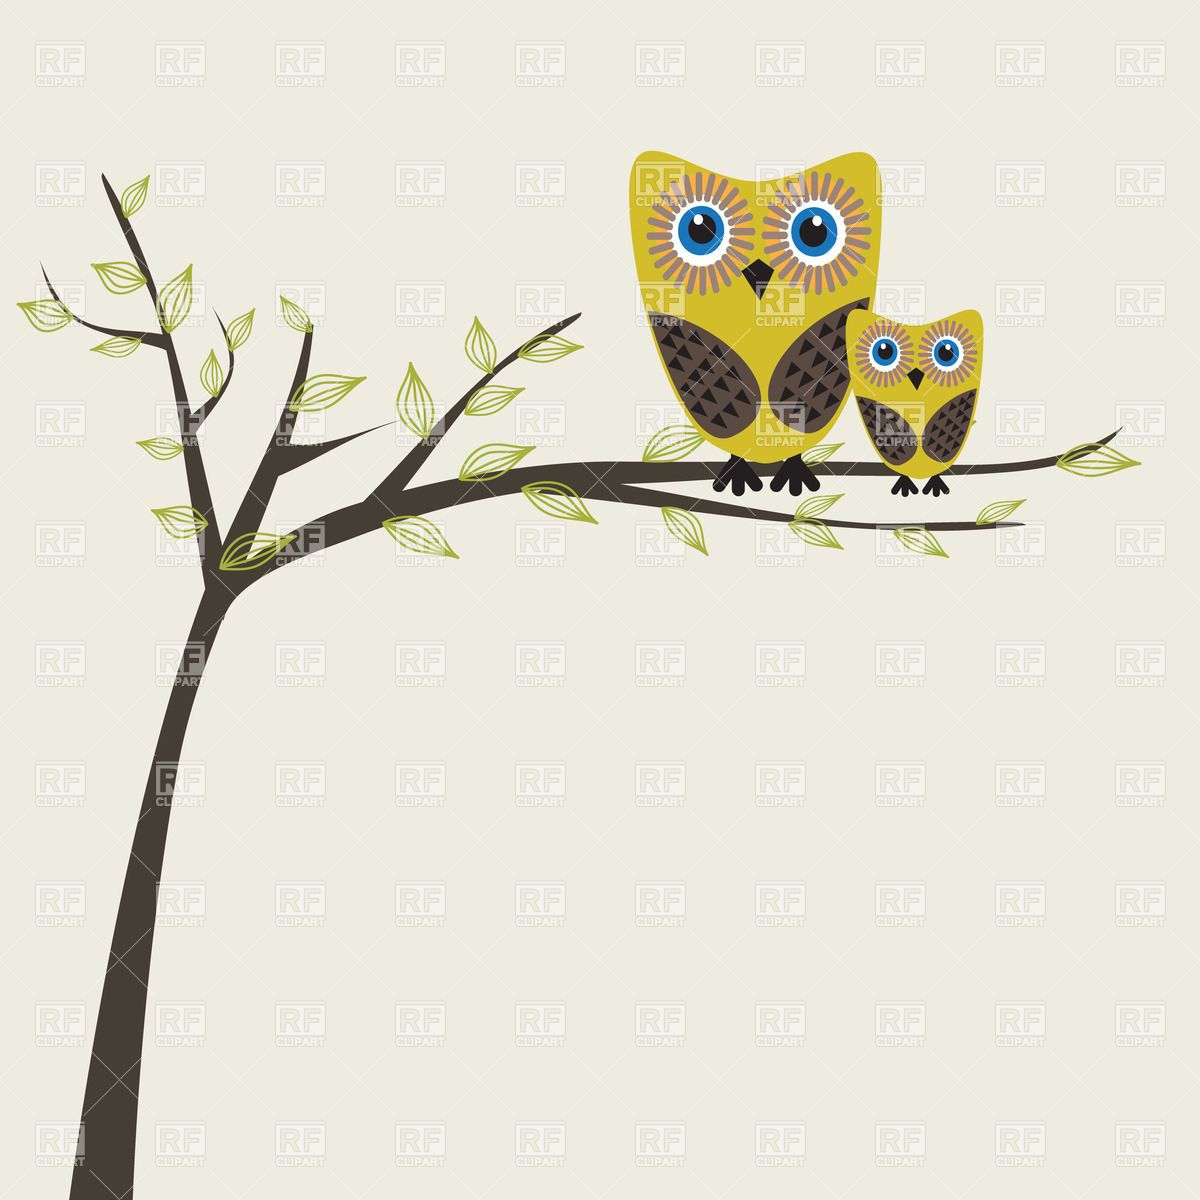 Zipper black and white clipart images amp pictures becuo - Two Cute Cartoon Owls On A Tree Branch Plants And Animals